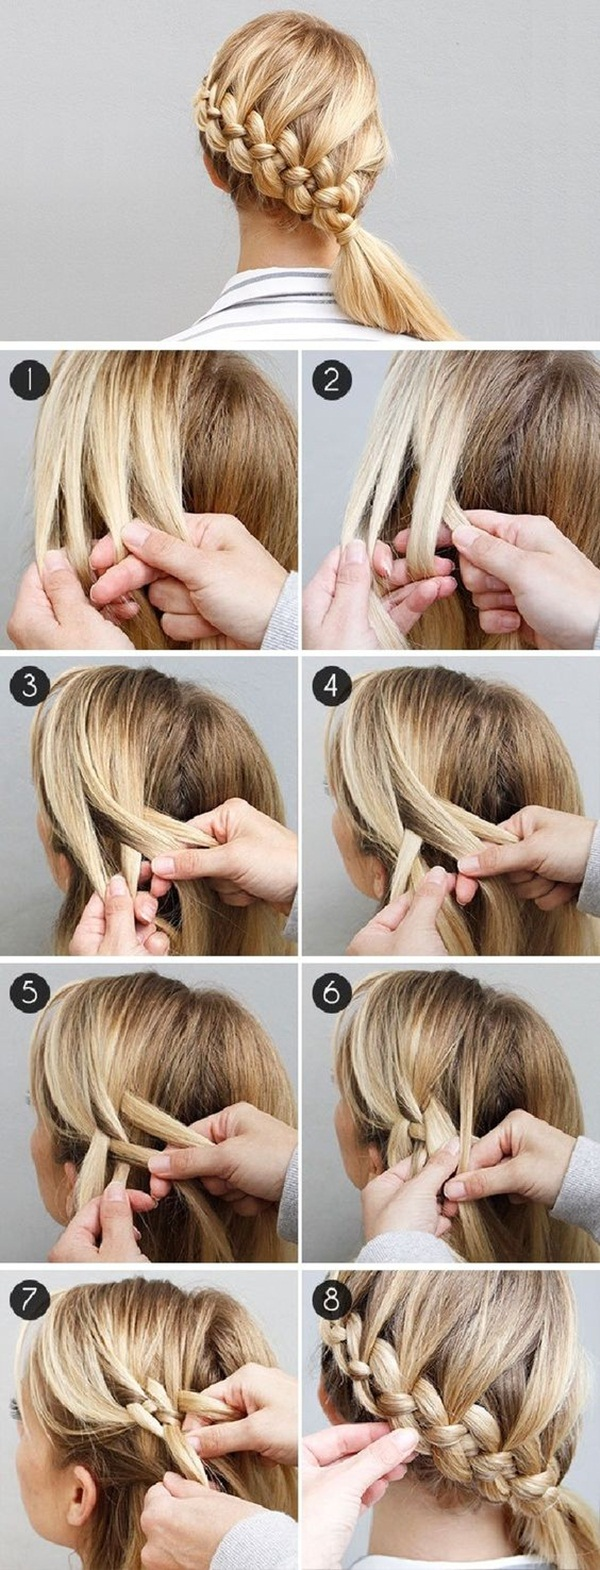 Easy Hairstyles For School (33)